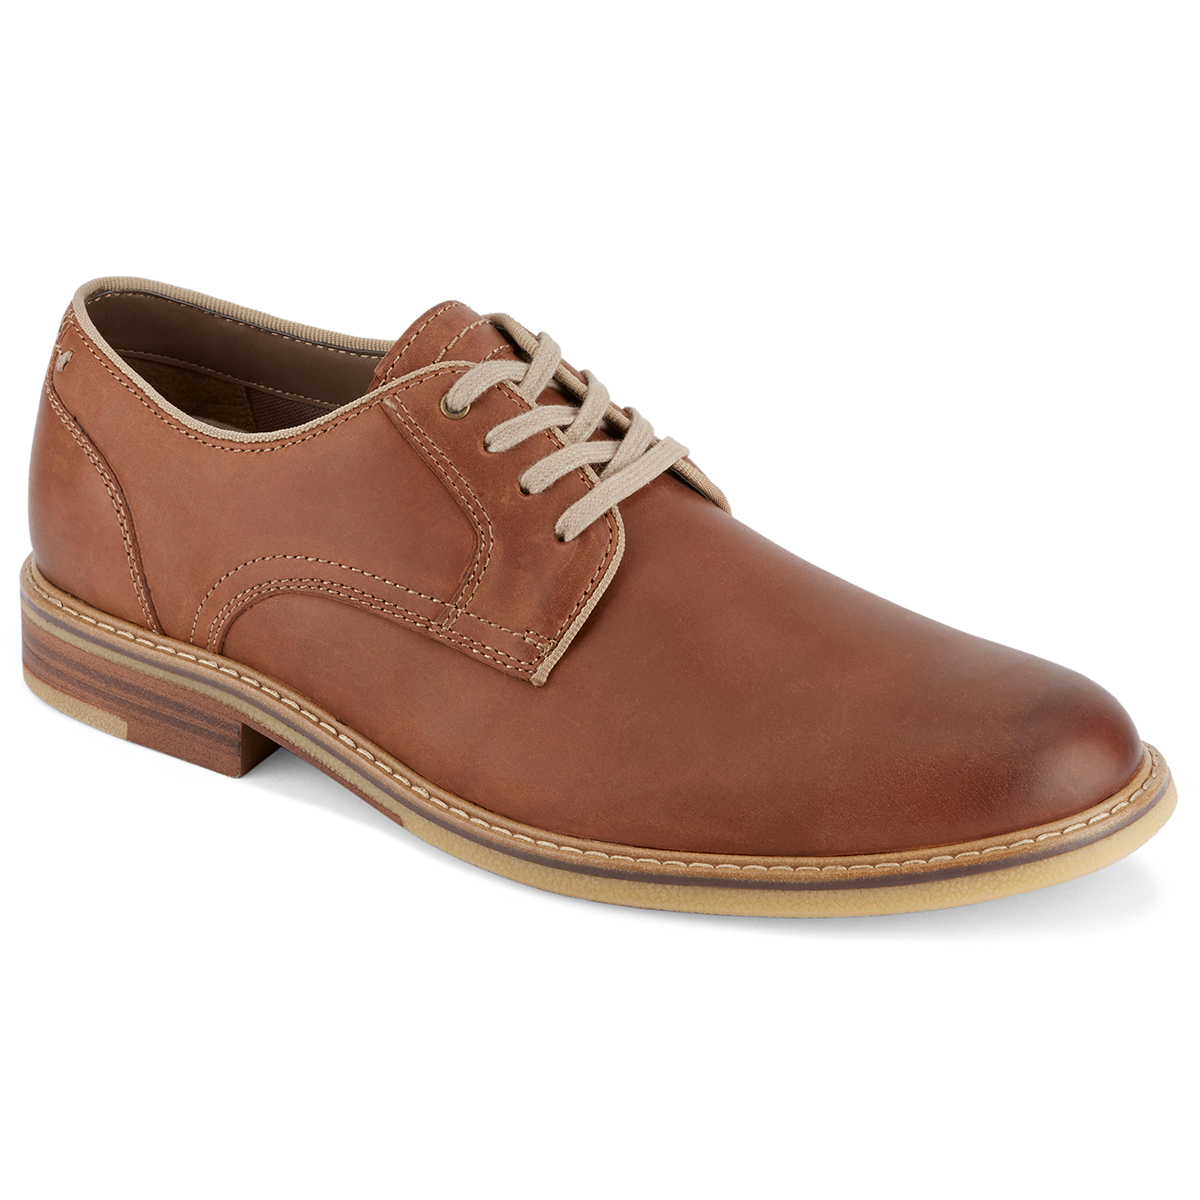 Dockers Men's Martin Oxford Shoe - Brown, 9